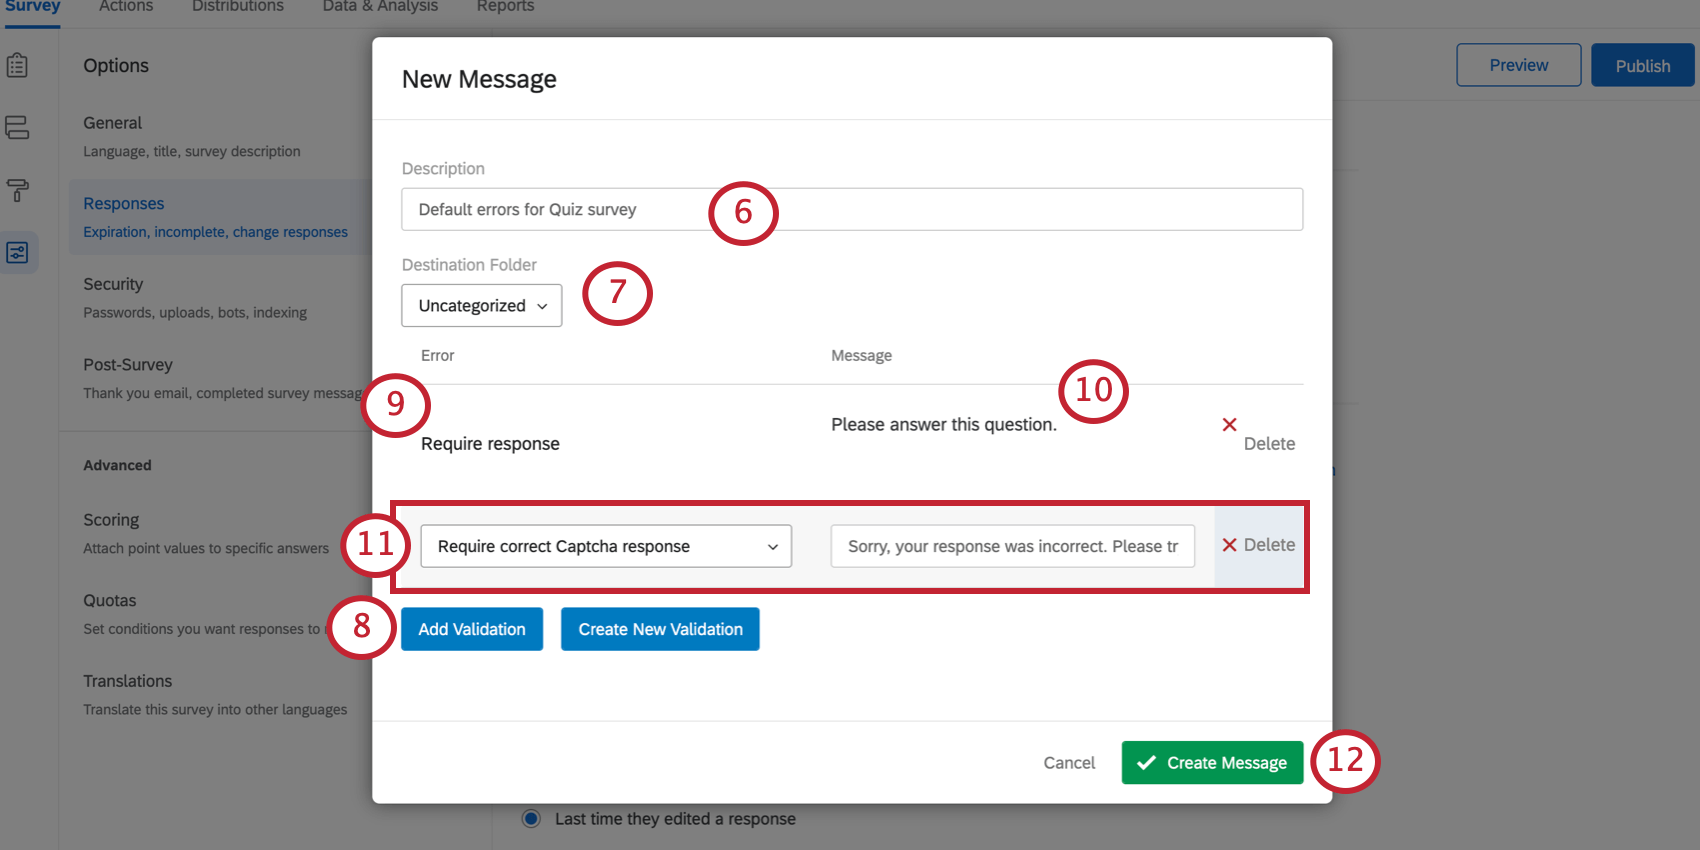 New Message window. Error field is set to Require Response. A default error for the Require Response and for the Captcha error